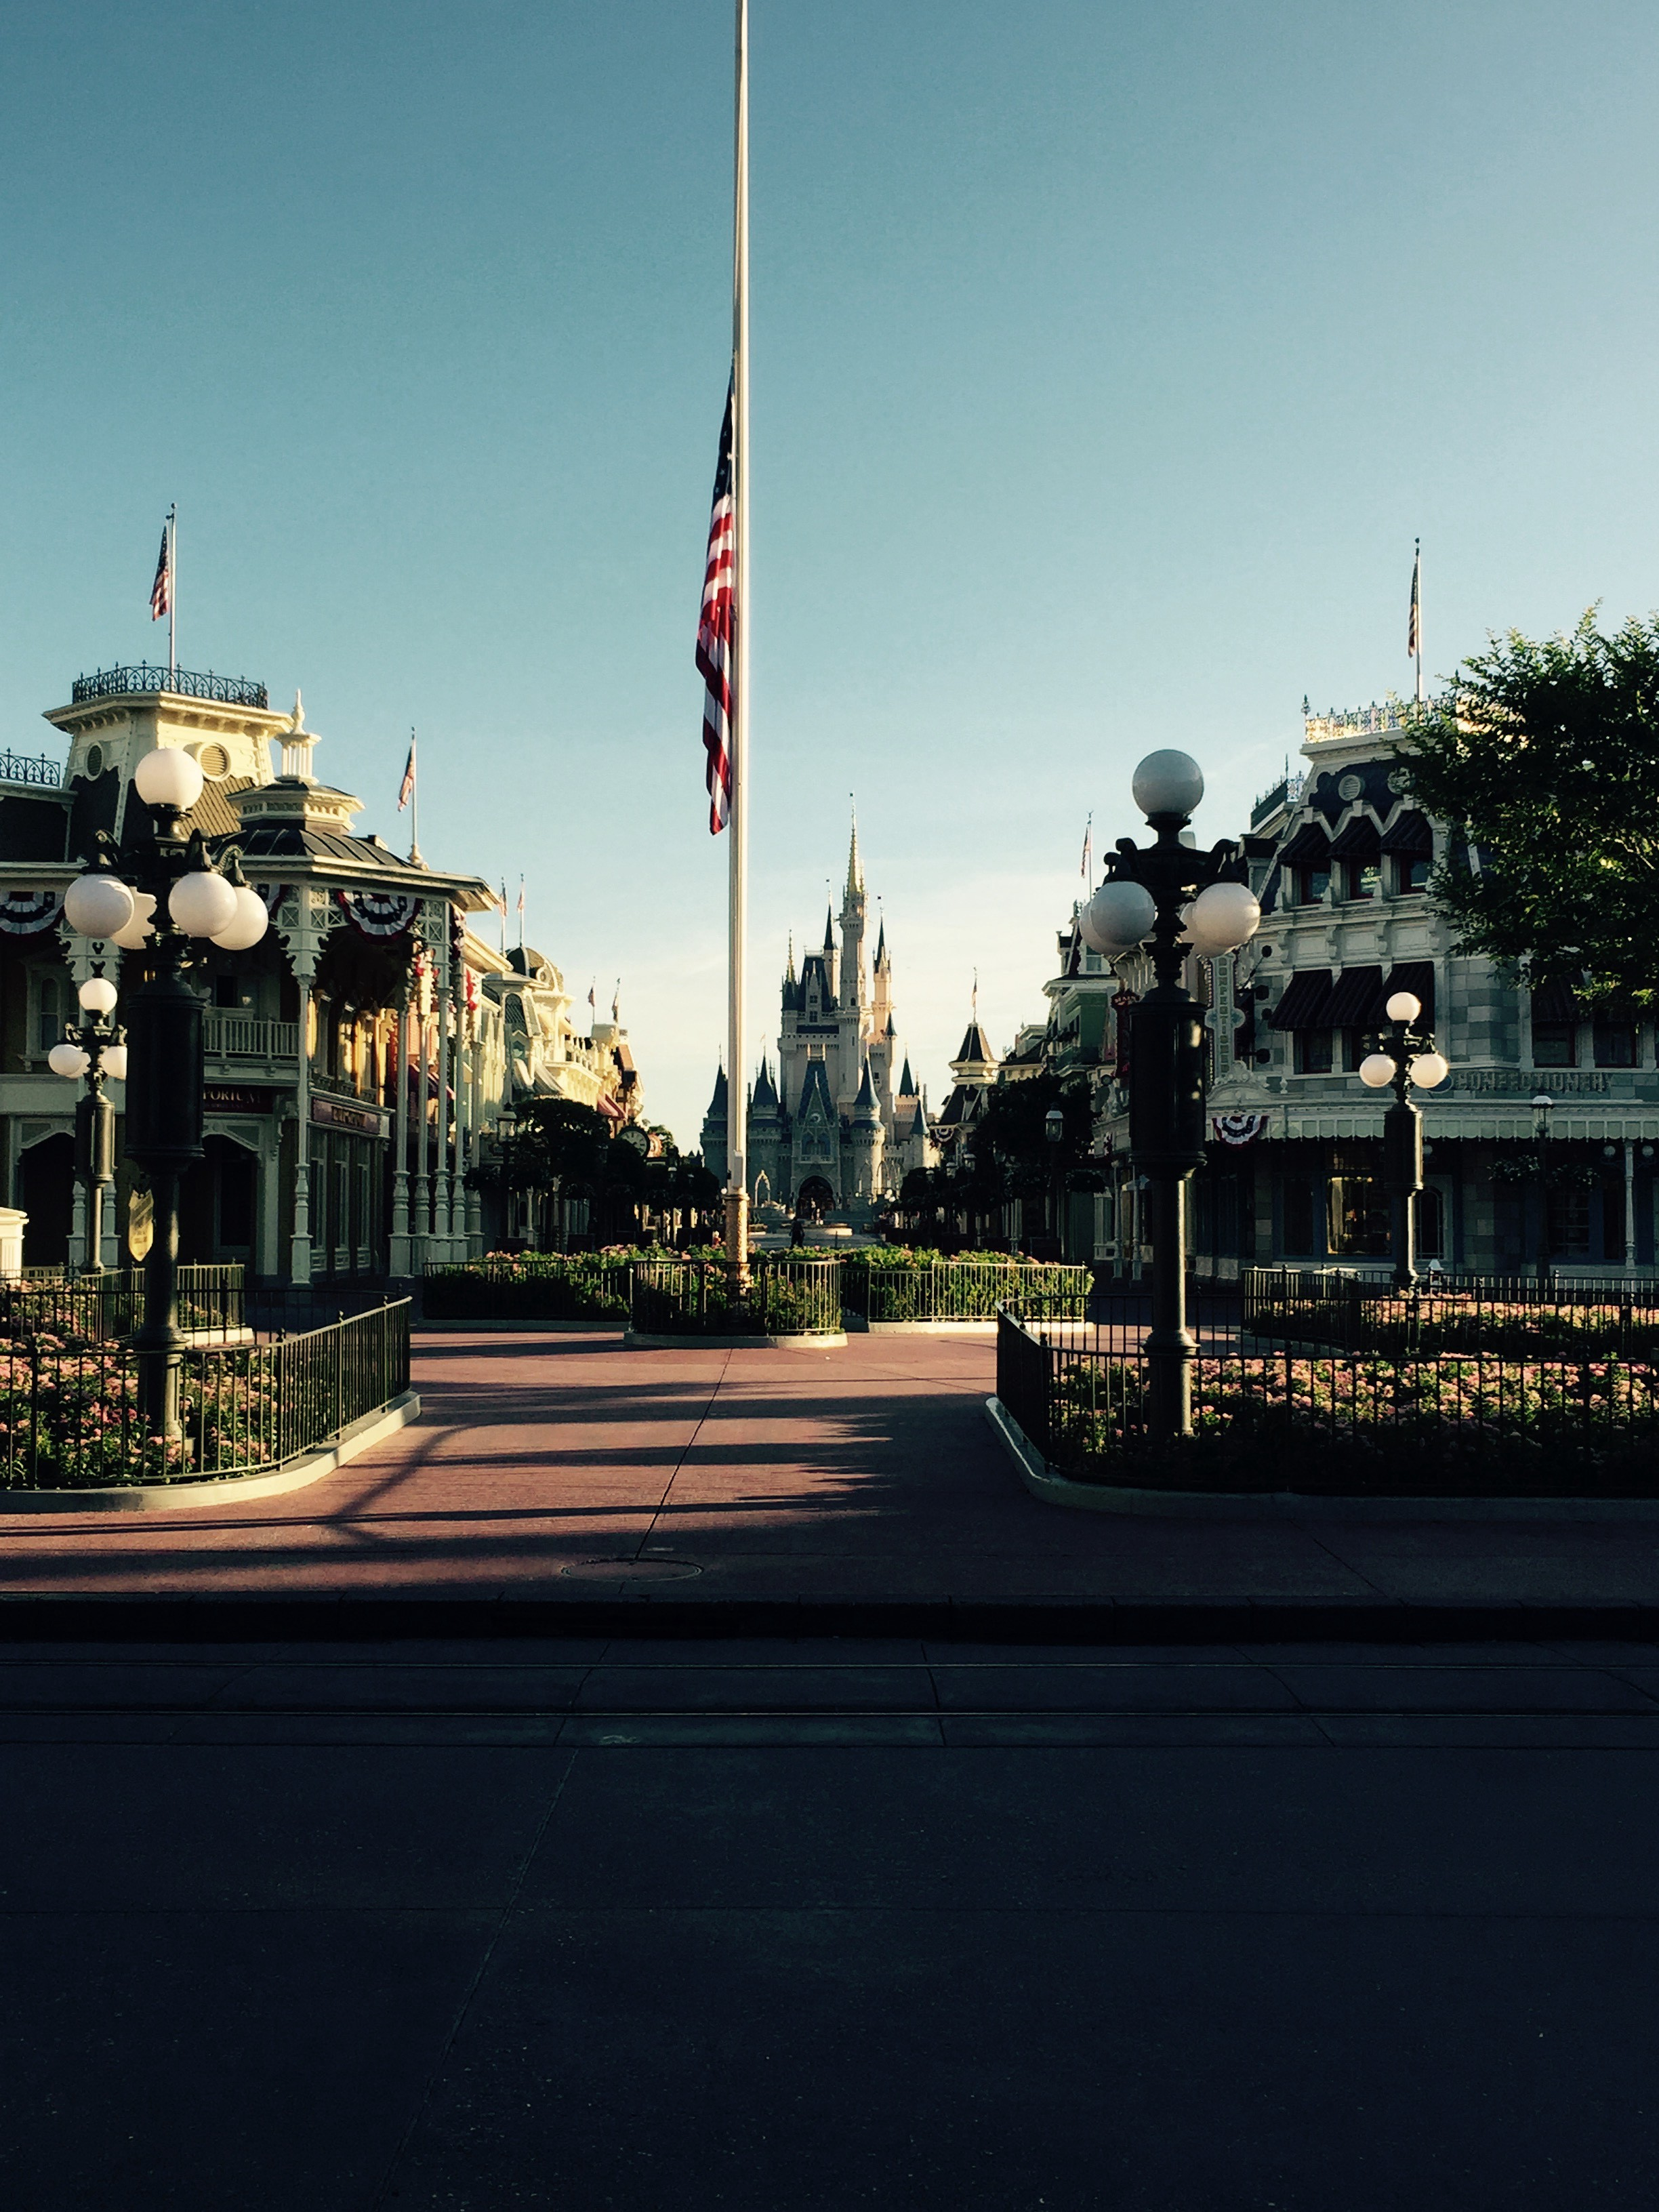 Walt Disney World And Disneyland Resorts Will Remain Closed Until Further Notice By Zach Perilstein Boardwalk Times